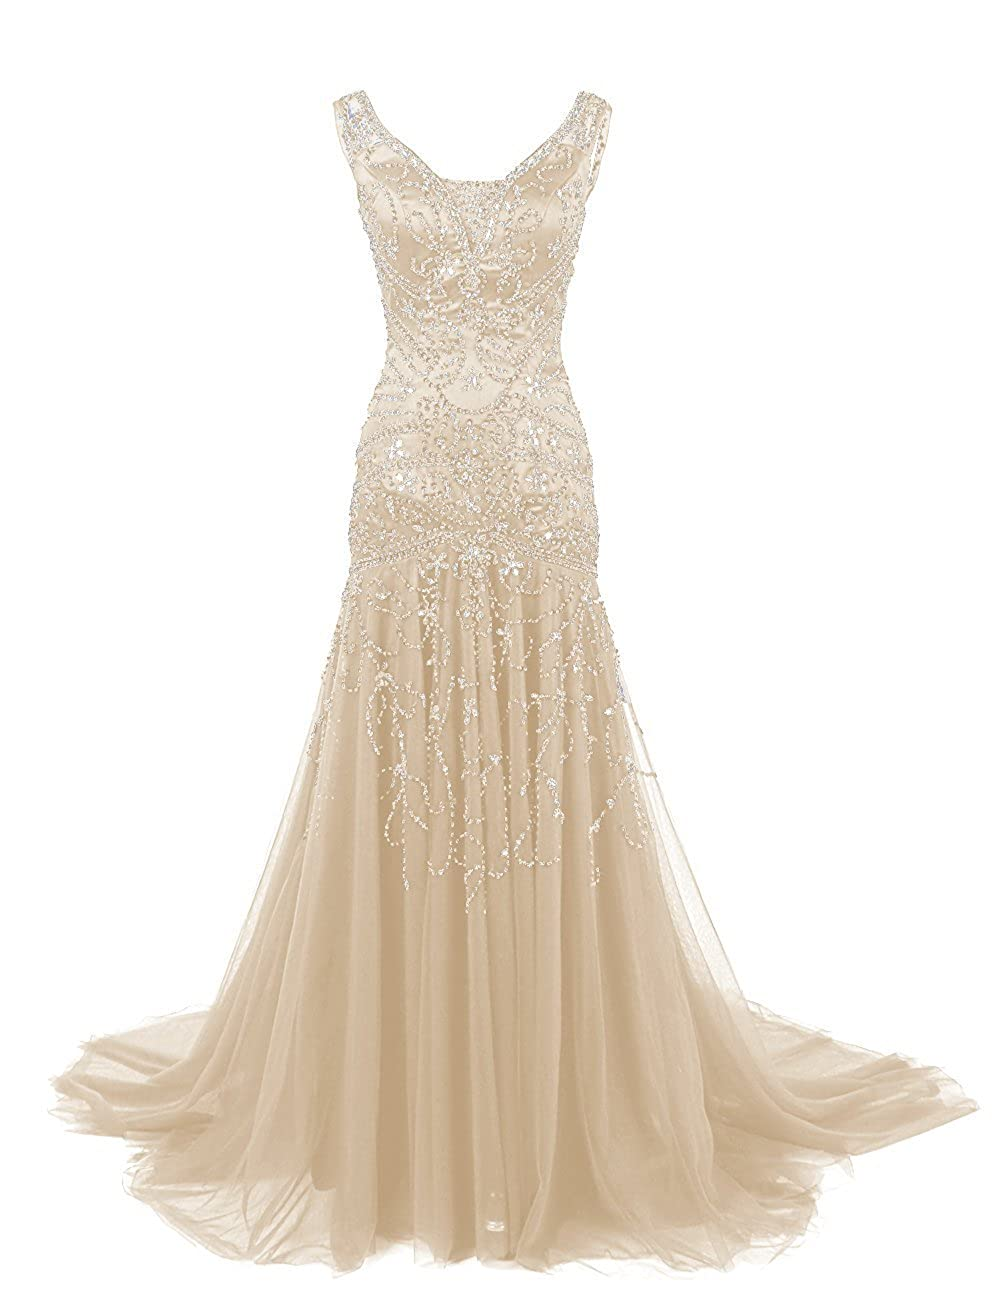 Champagne Ellenhouse Women's Long Mermaid Mother of Bride Dress Beaded Prom Ball Gowns